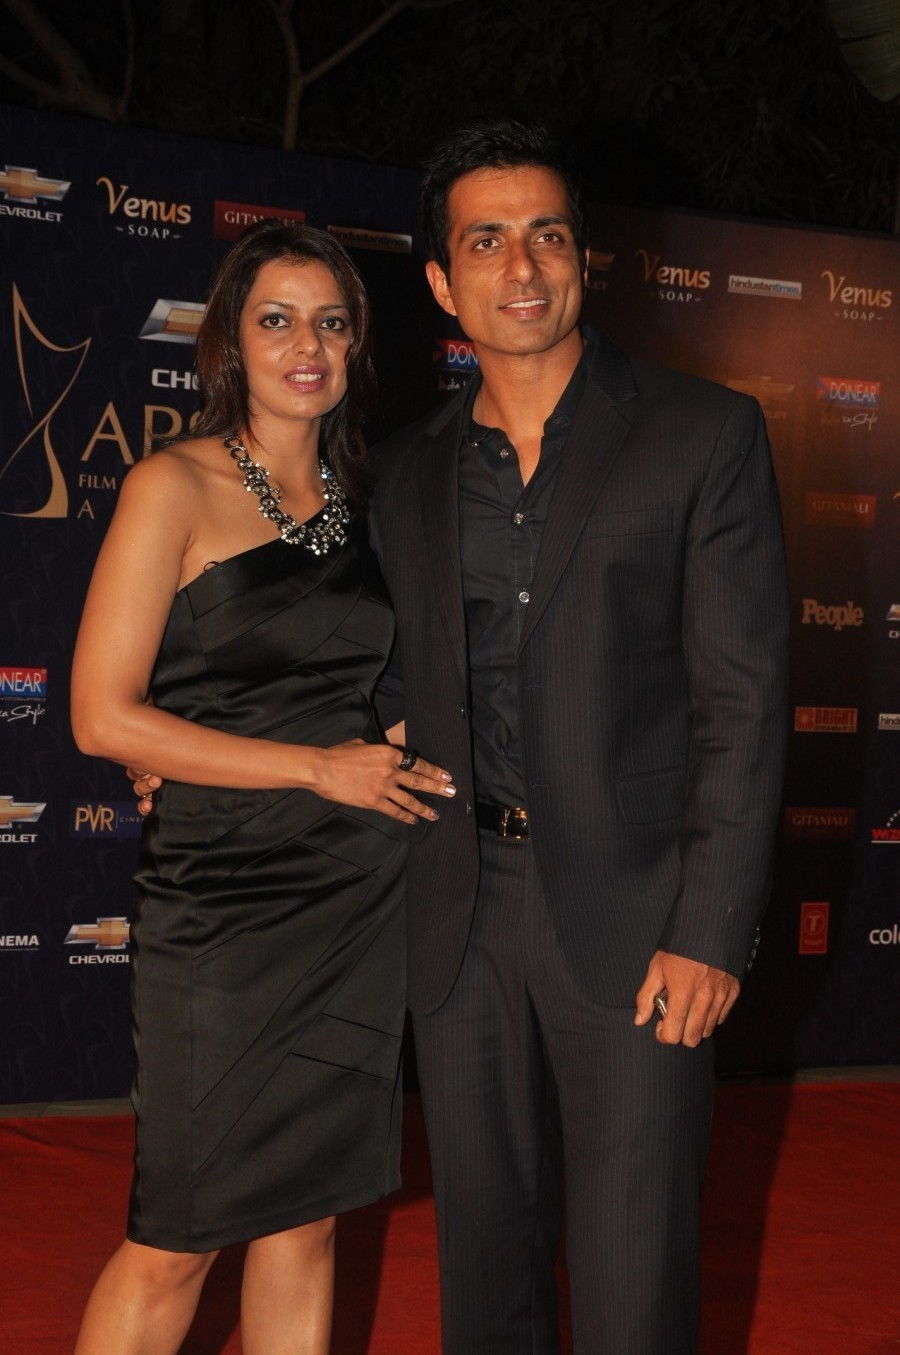 Sonu Sood with wife at APSARA FILM TV PRODUCERS GUILD AWARDS